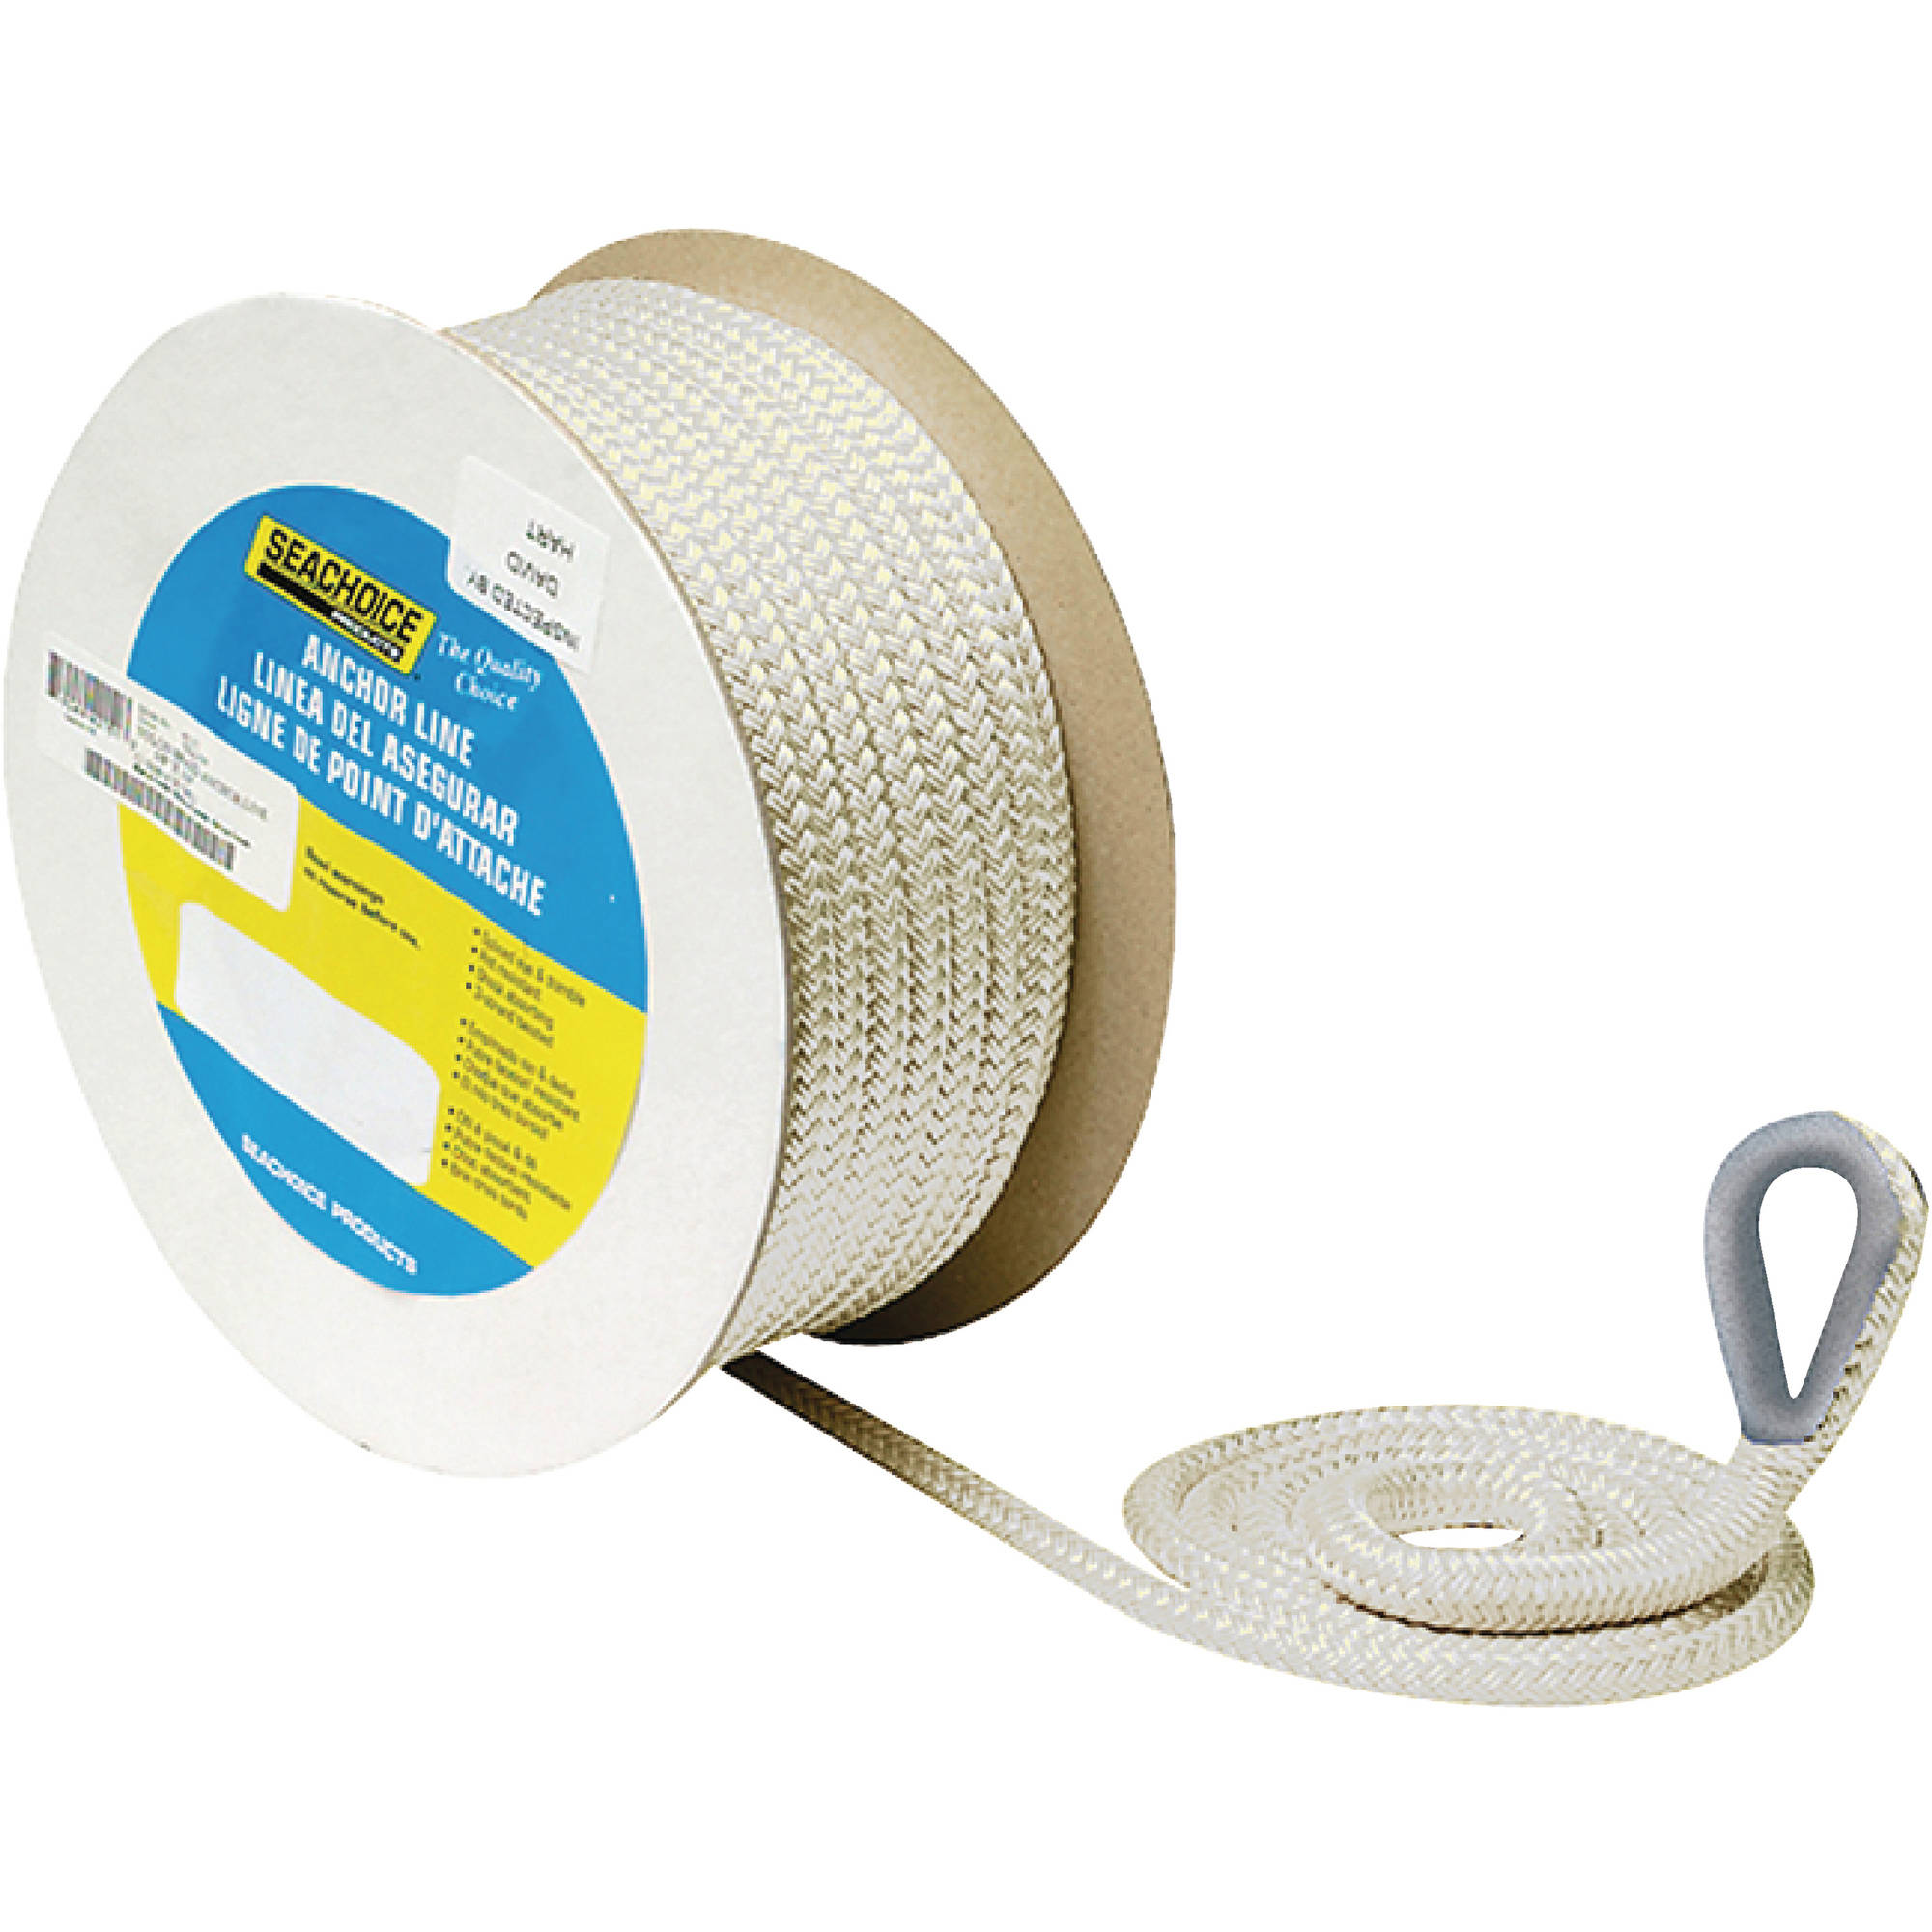 Click here to buy Seachoice Double Braid Nylon Anchor Line, White by Seachoice Products.